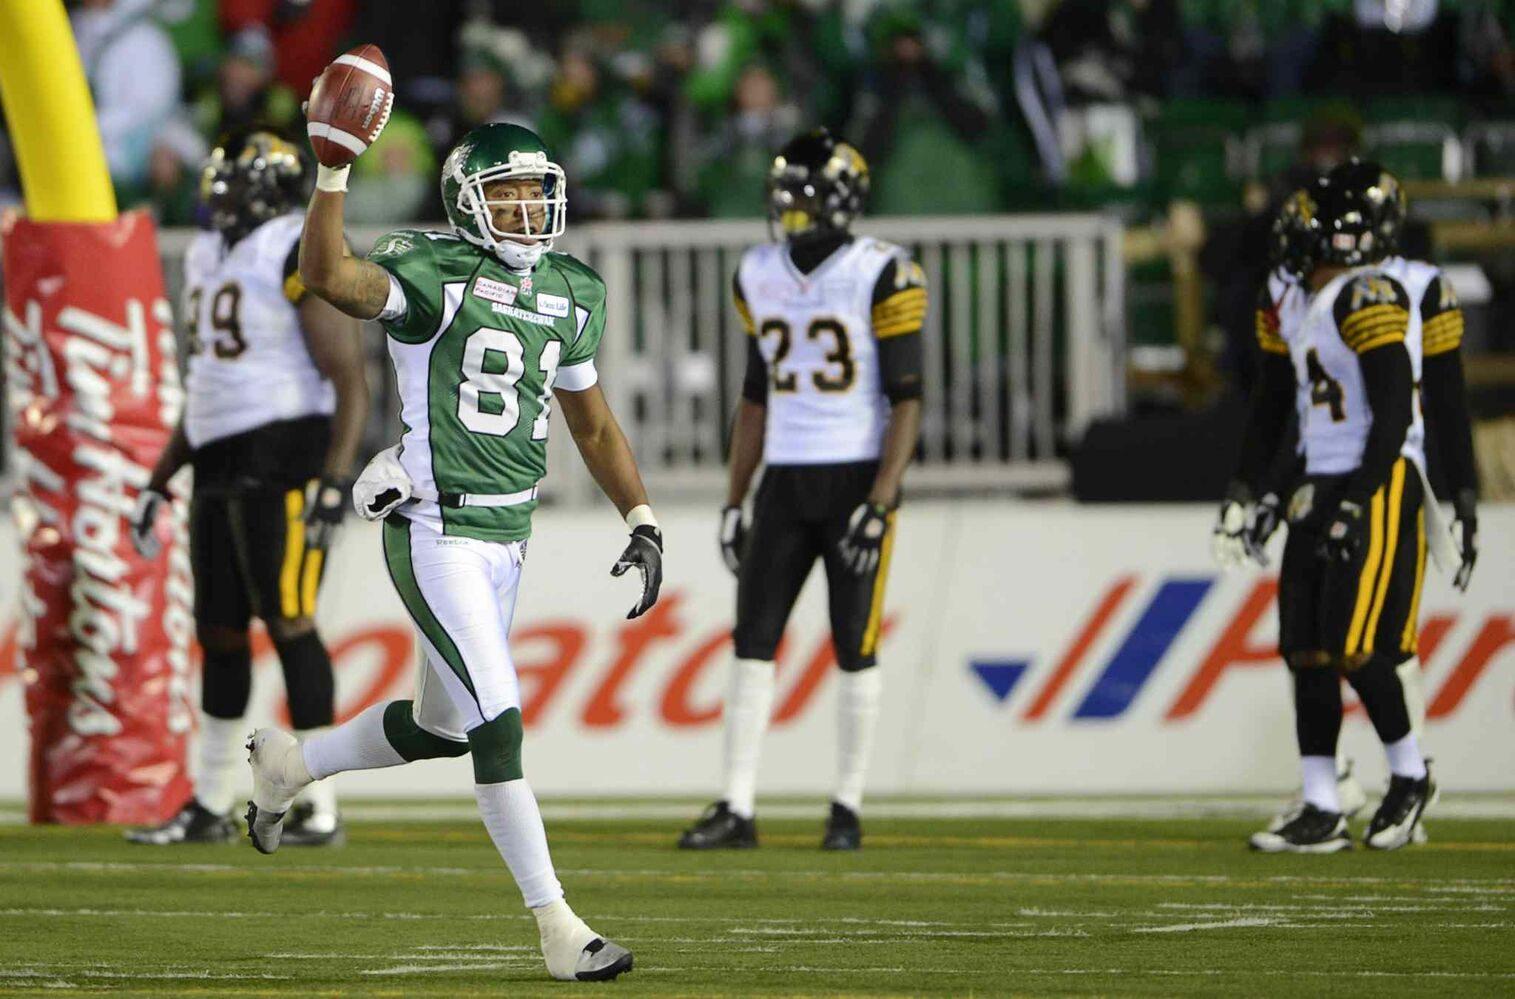 Saskatchewan Roughriders slotback Geroy Simon celebrates his second touchdown against the Hamilton Tiger-Cats during the second quarter. (Ryan Remiorz / The Canadian Press)